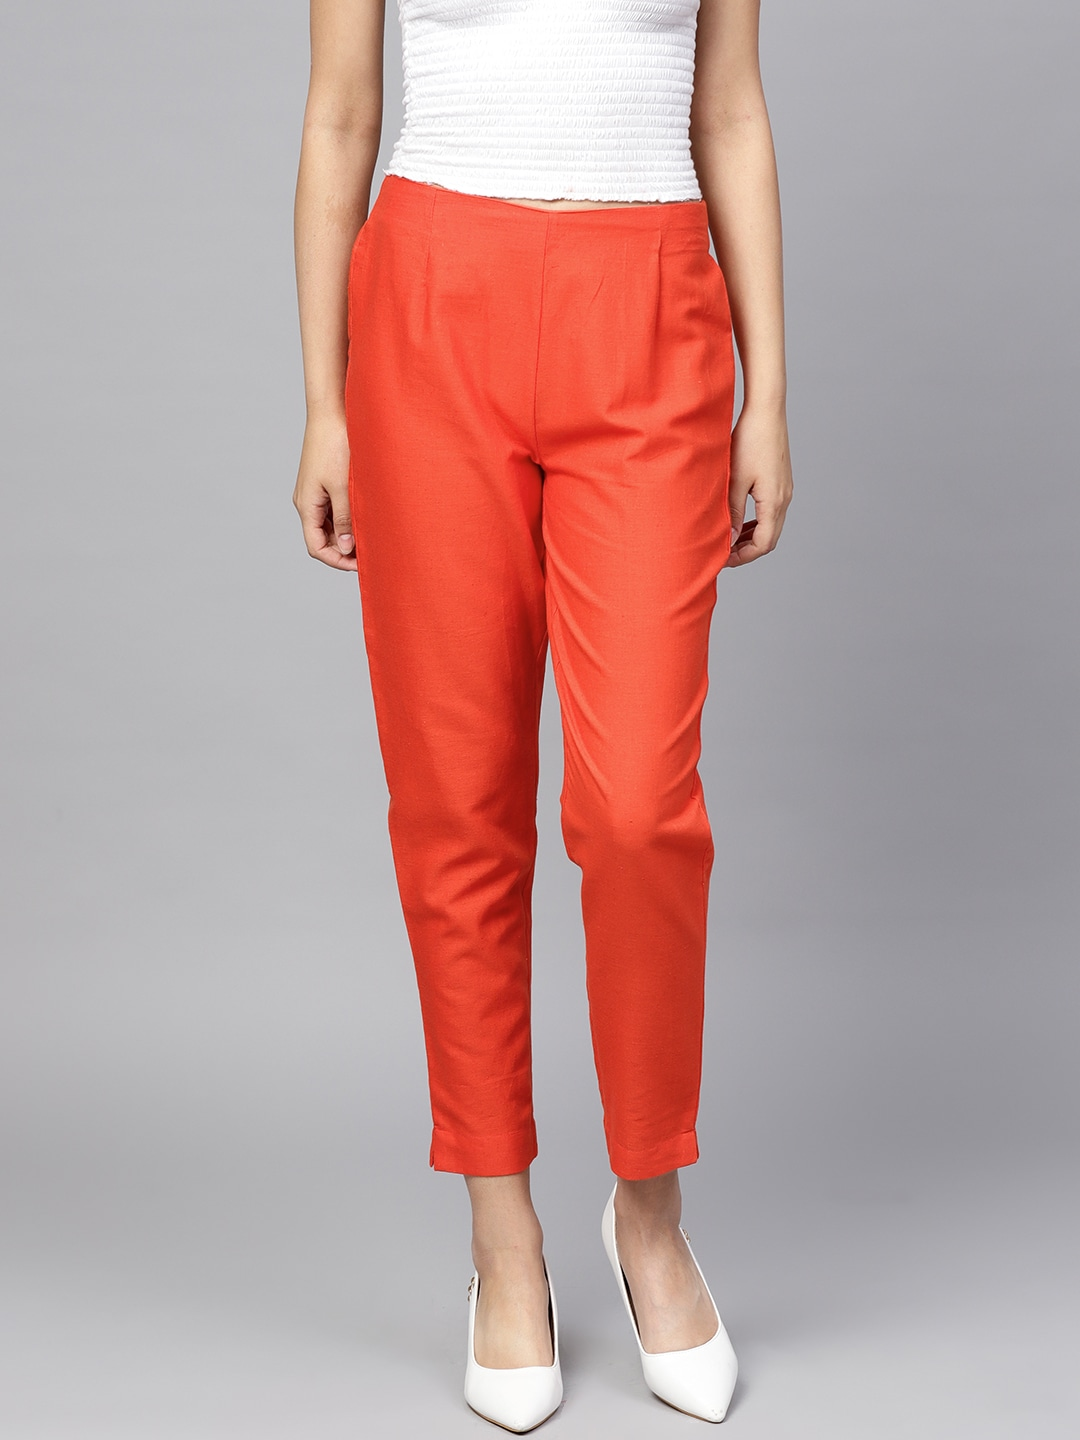 1ffc82d293c3 Cigarette Pants - Buy Cigarette Trousers for Men and Women Online in India